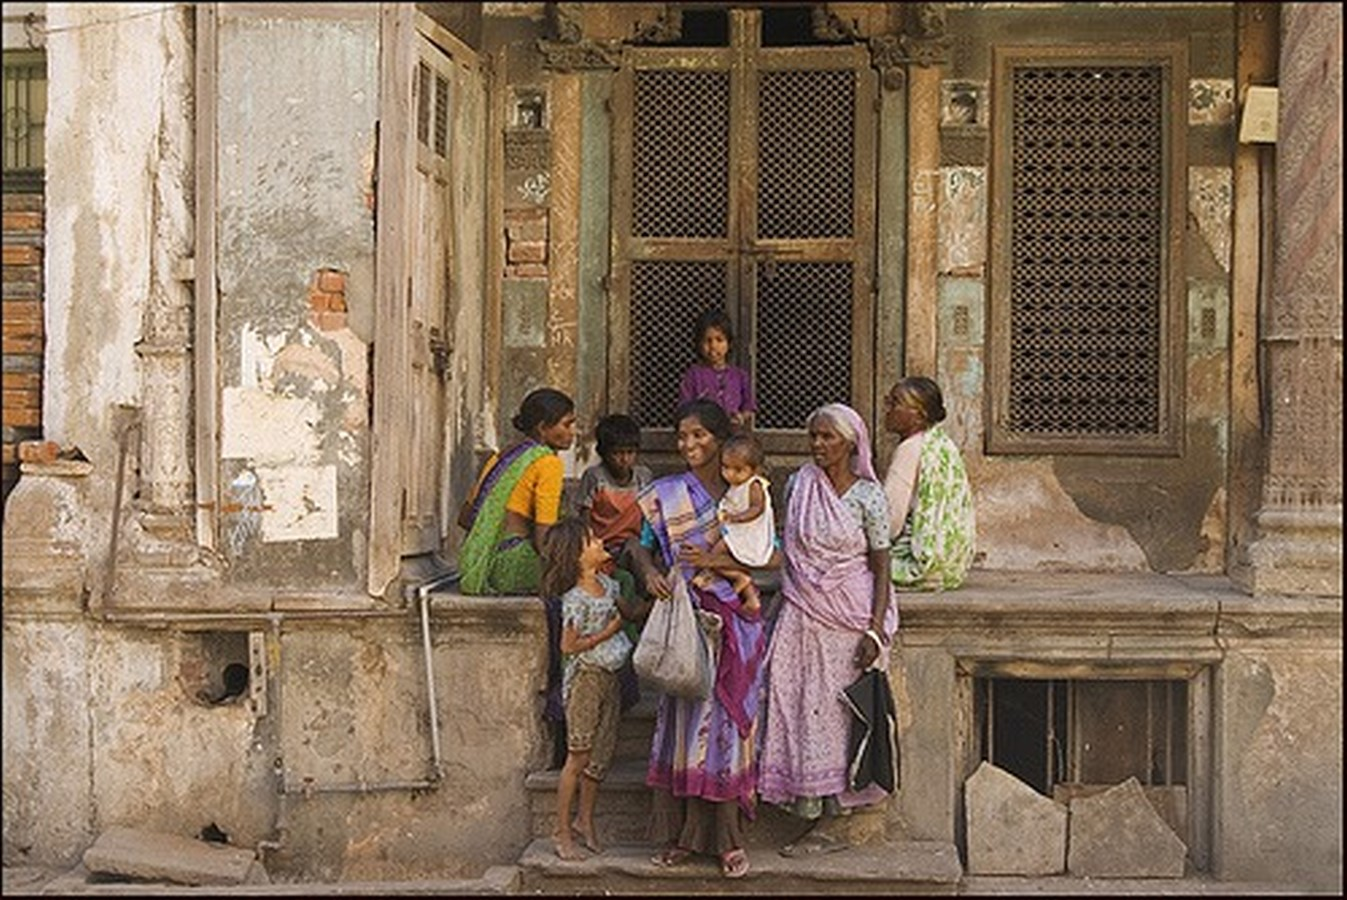 Walking through the streets of Ahmedabad - Sheet5